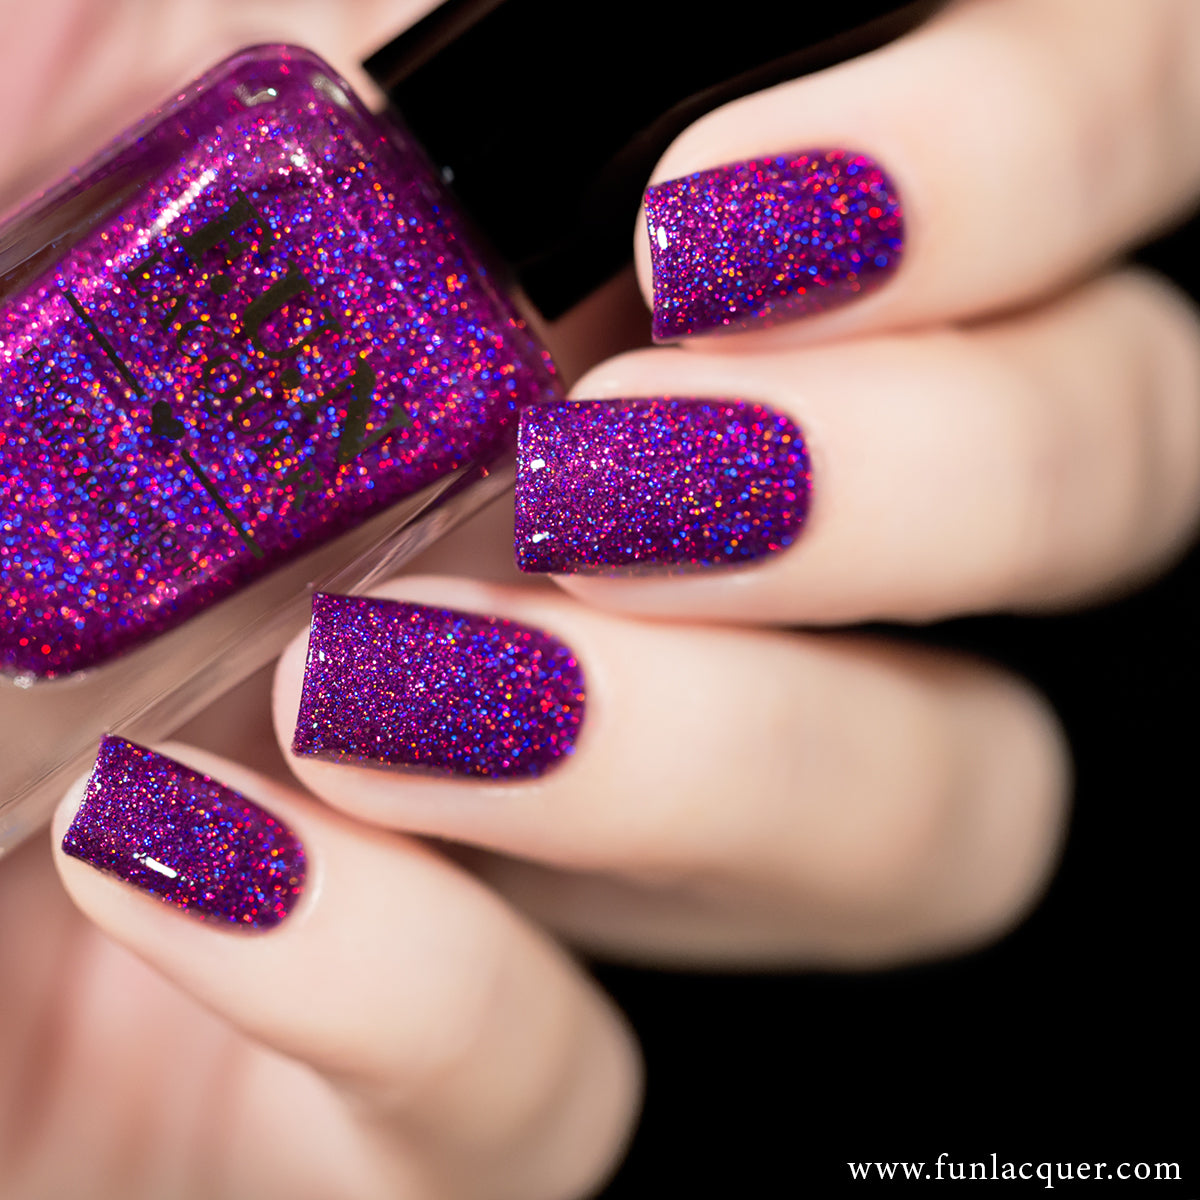 *PRE-SALE* F.U.N Lacquer - Crazy In Love